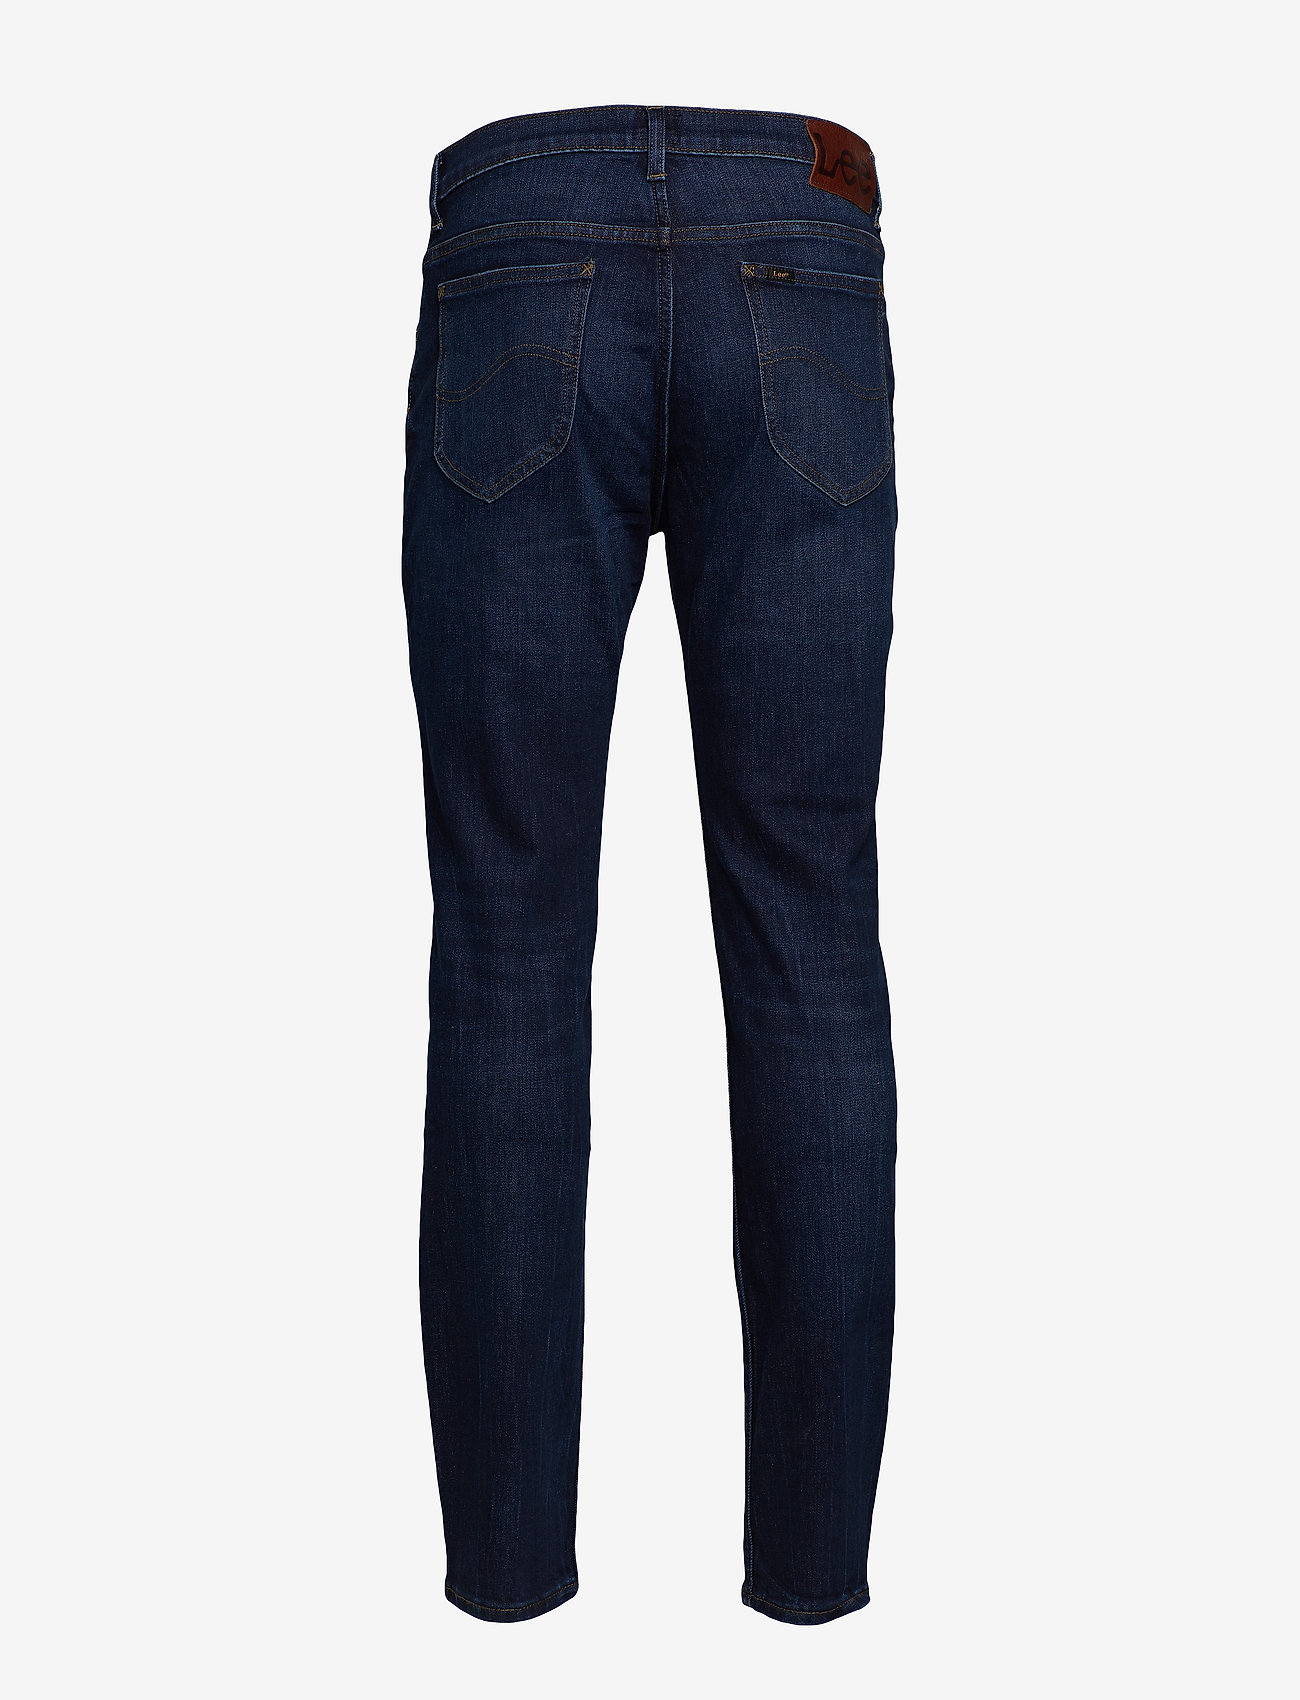 Lee Jeans - RIDER - regular jeans - dark pool - 1